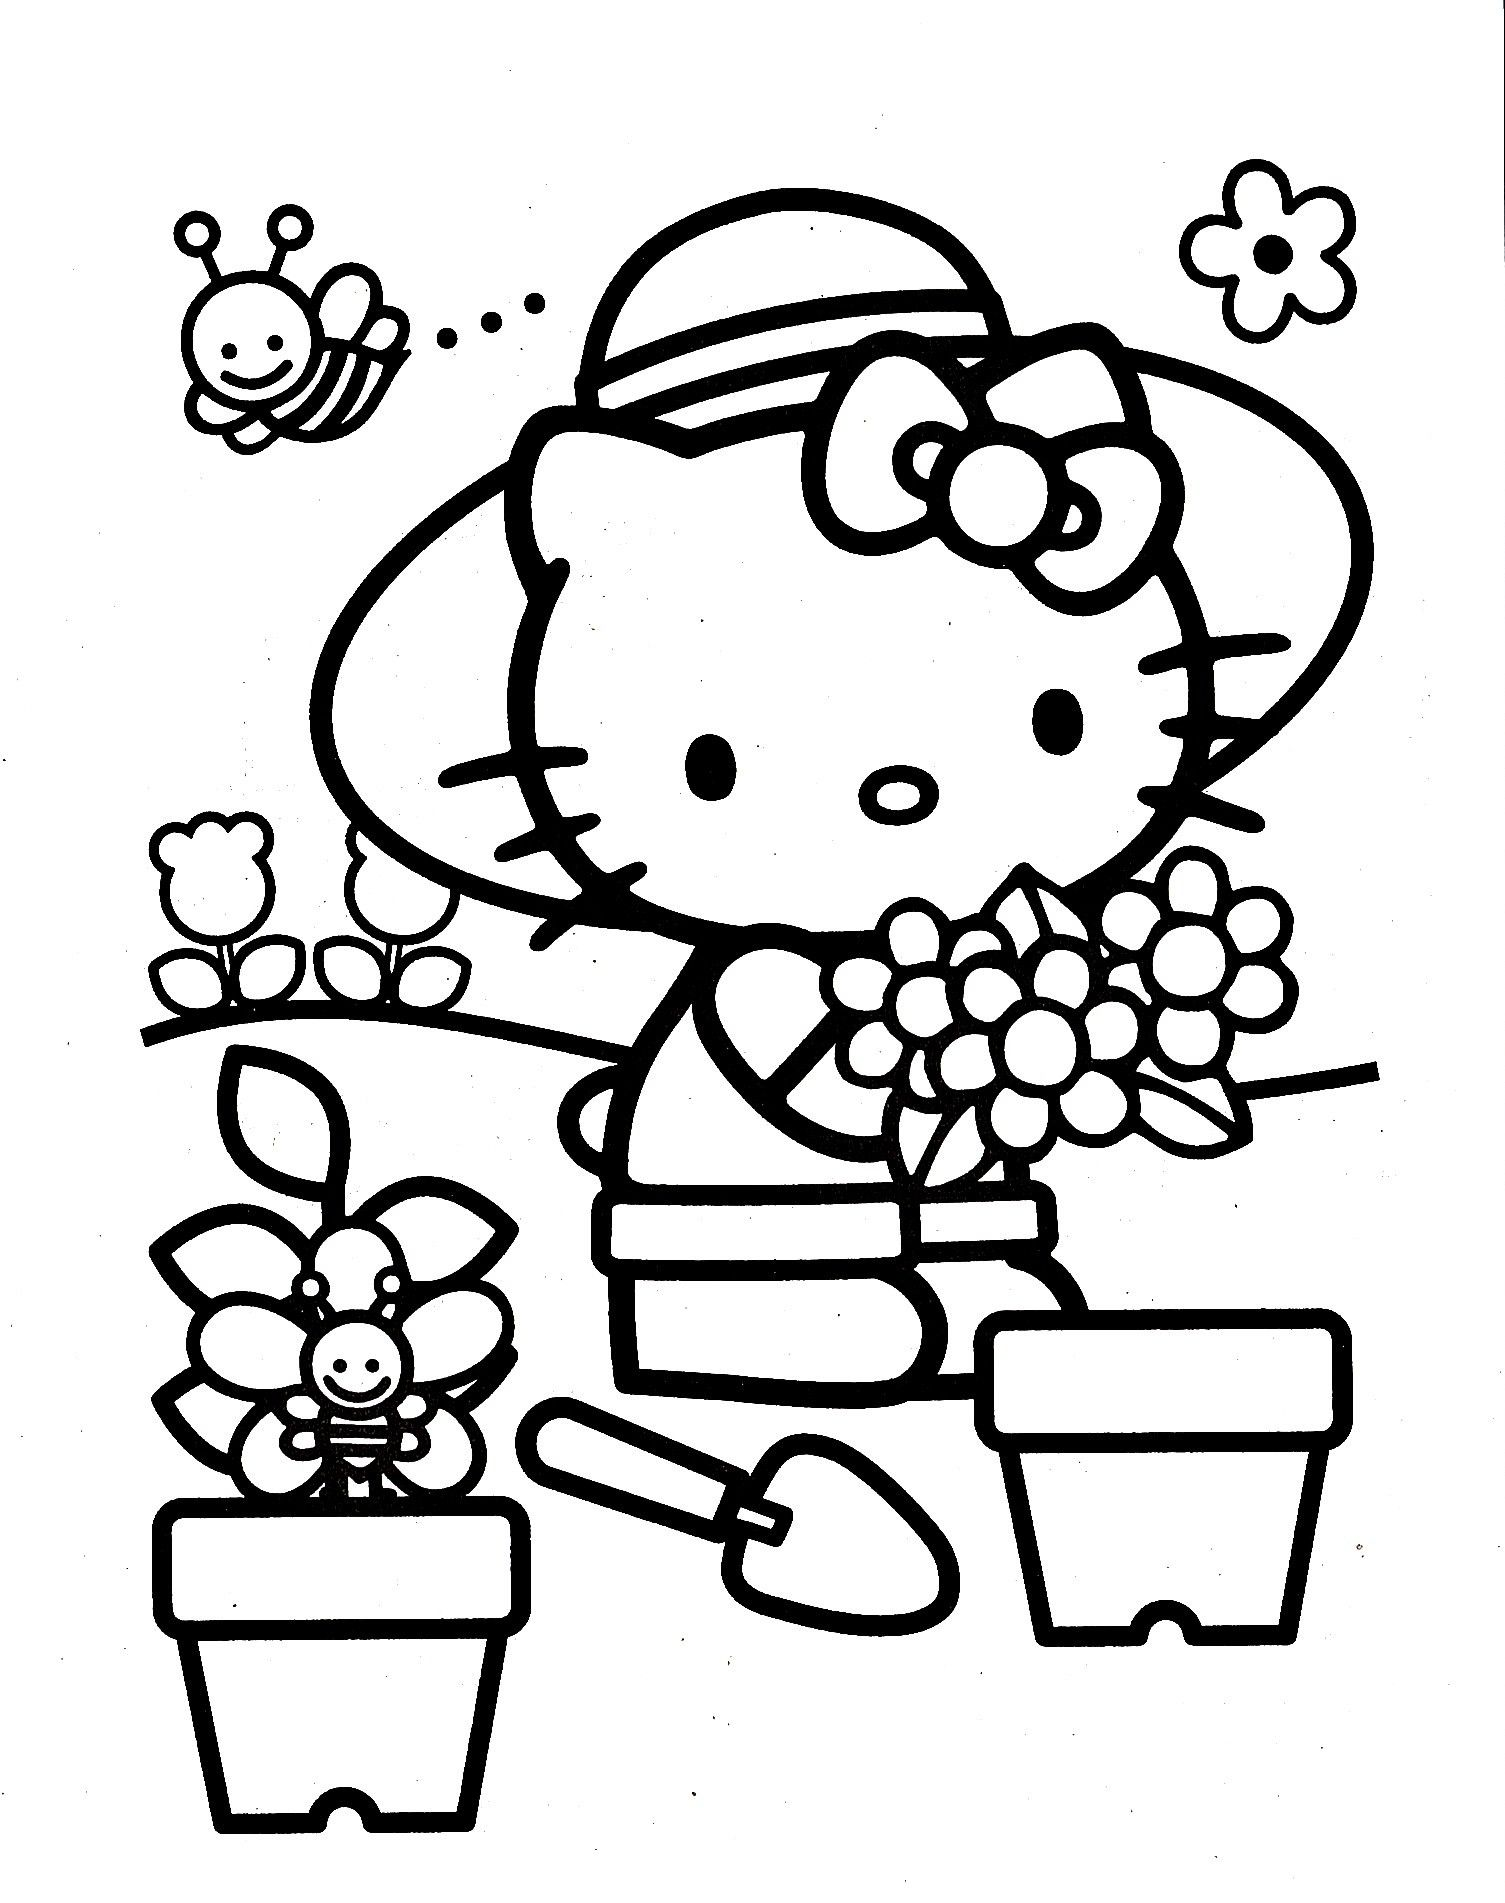 snario coloring pages - photo#13